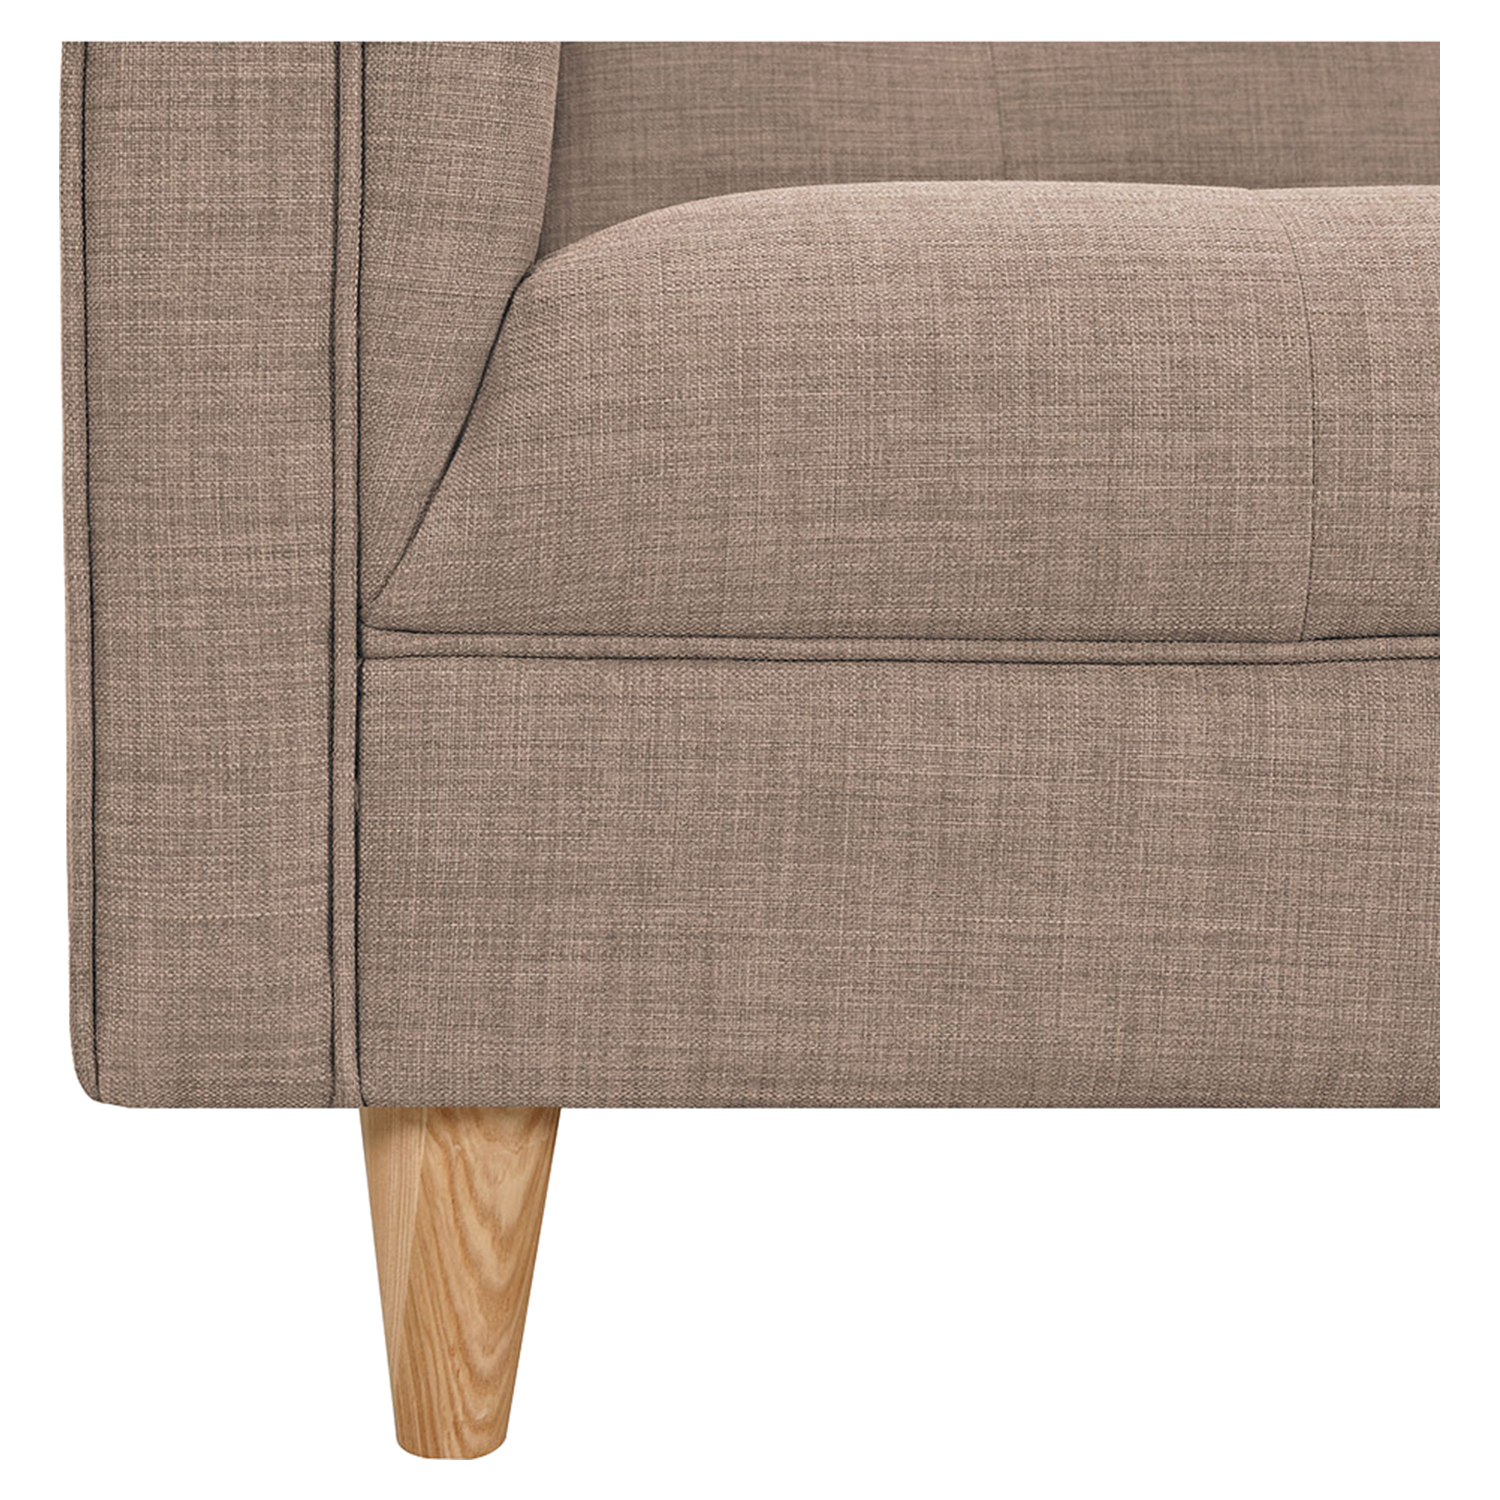 Kaja Armchair - Light Sand, Tufted - NYEK-223326